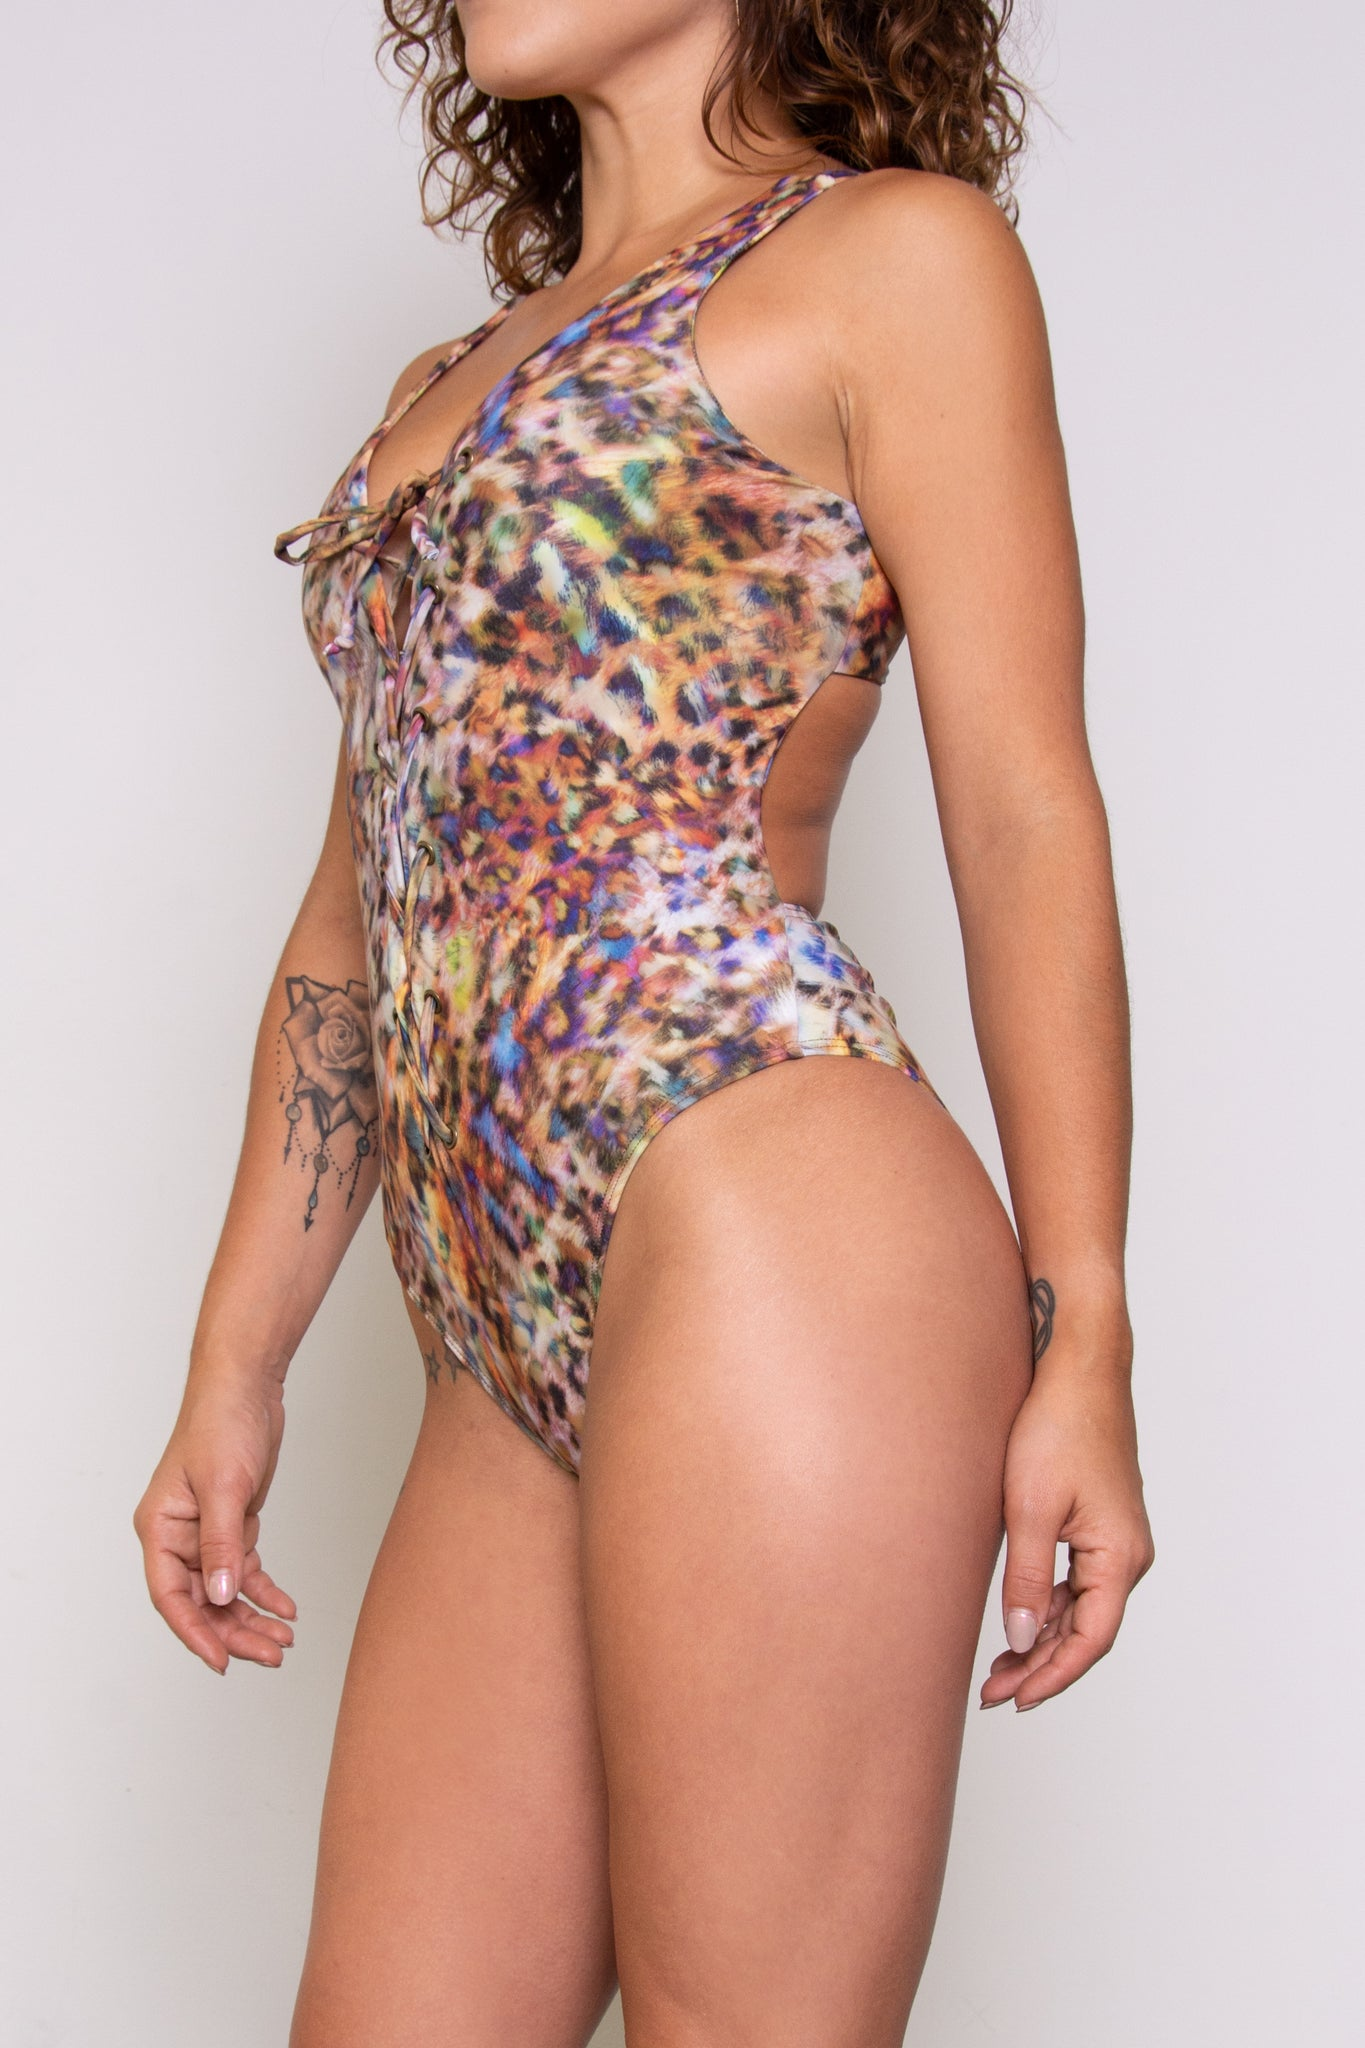 Claudia Renee Bodysuit - Colorful Kitty